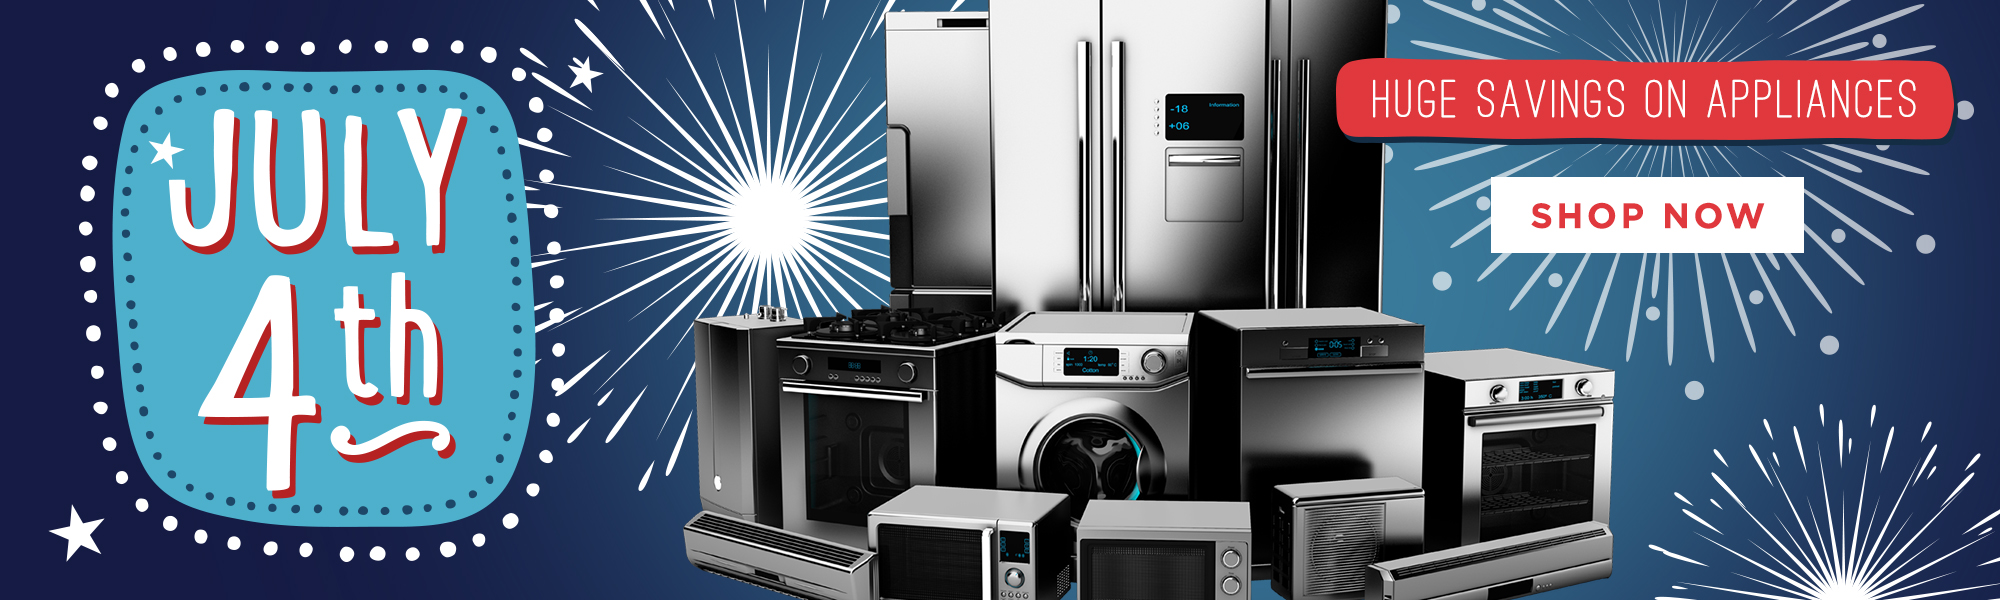 Bade Appliance - Home Appliances, Kitchen Appliances in Bradley IL 60915